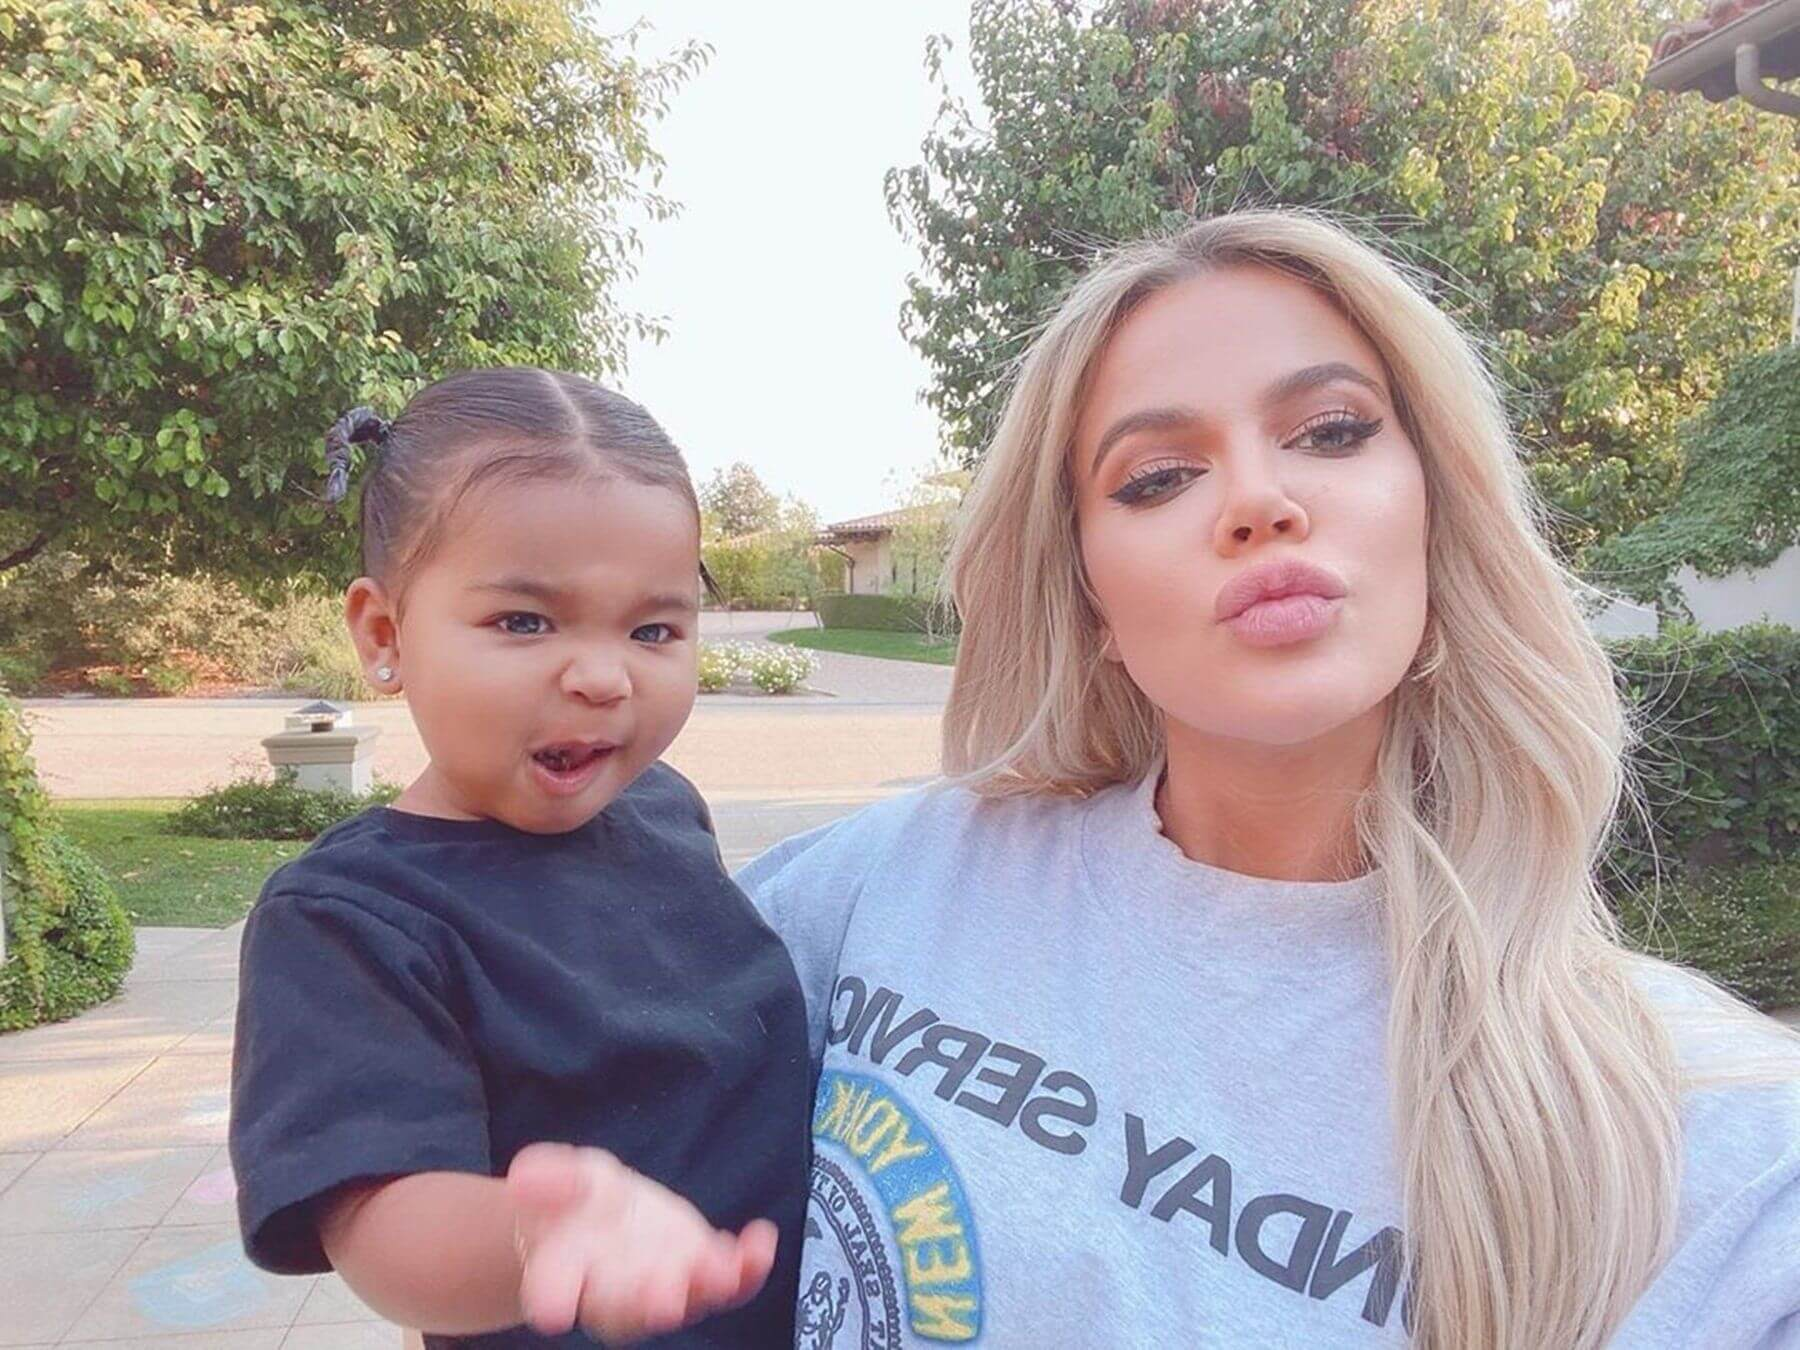 Khloe and daughter True